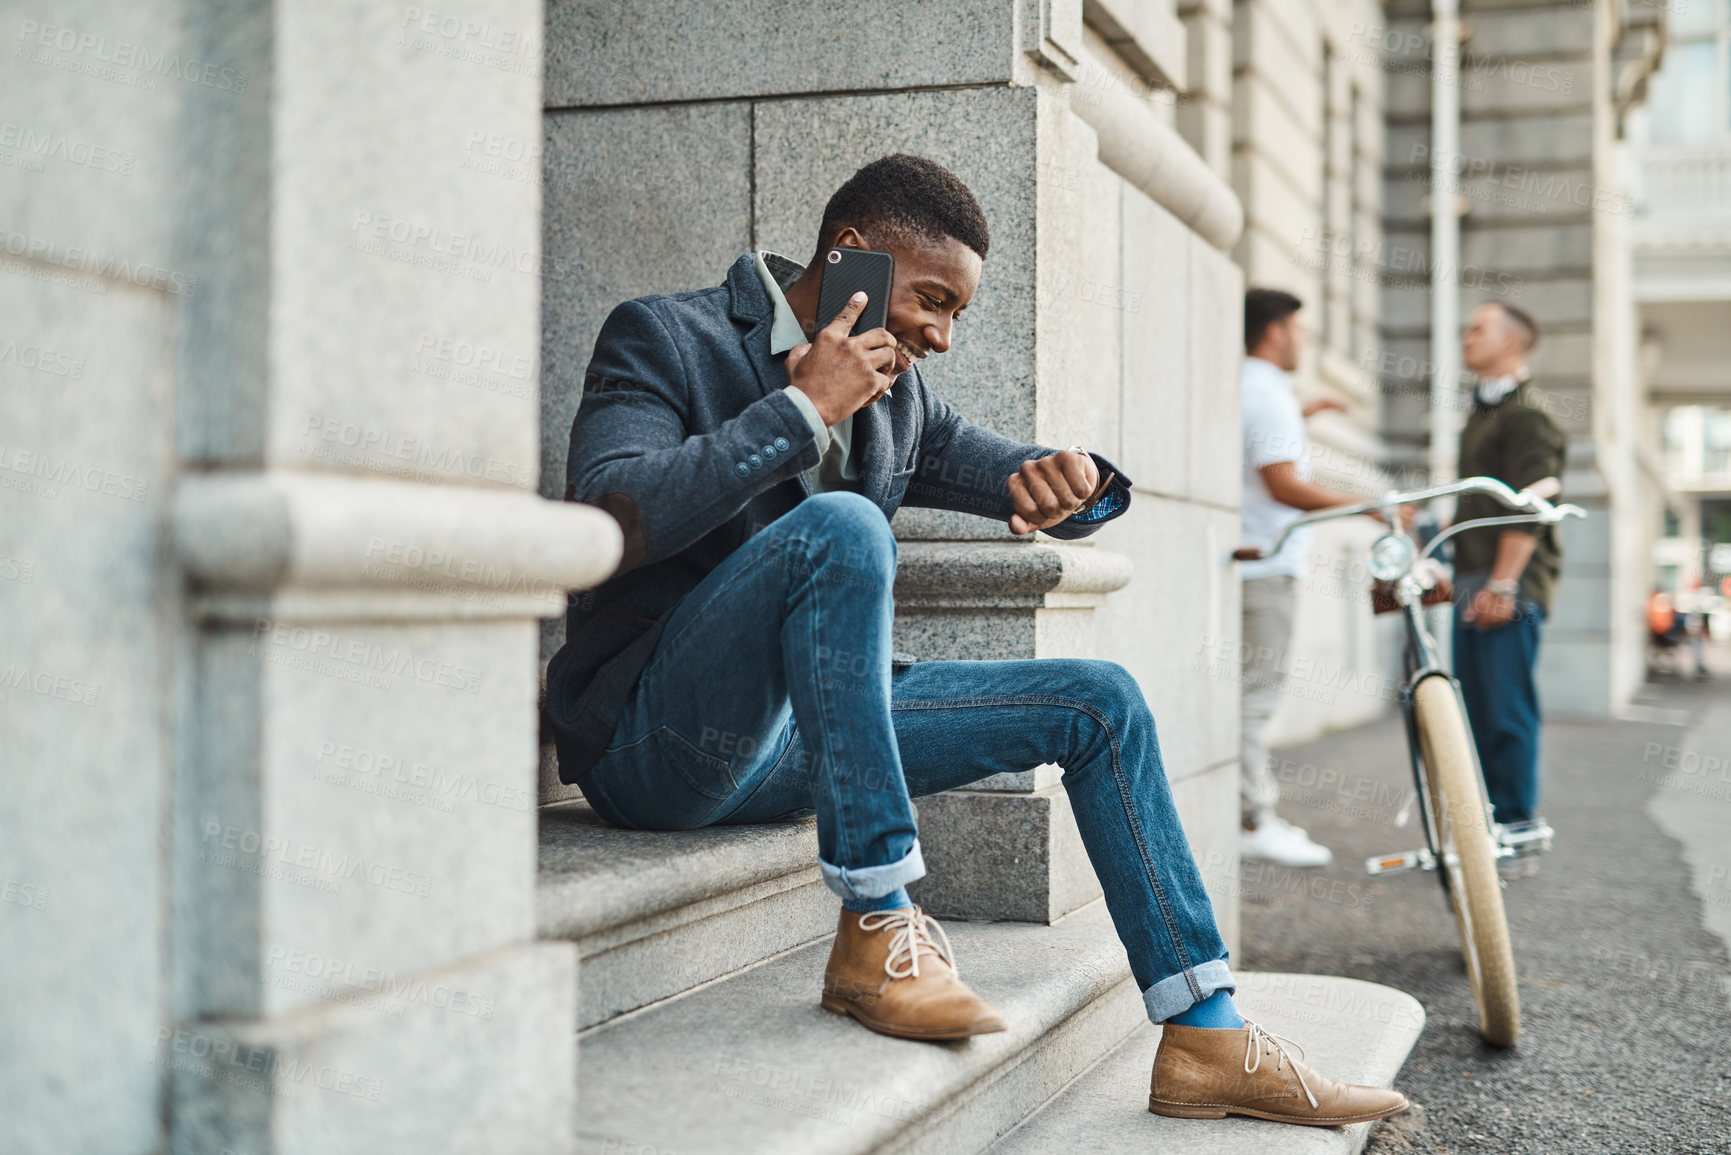 Buy stock photo Shot of a young businessman using a smartphone and checking the time against an urban background